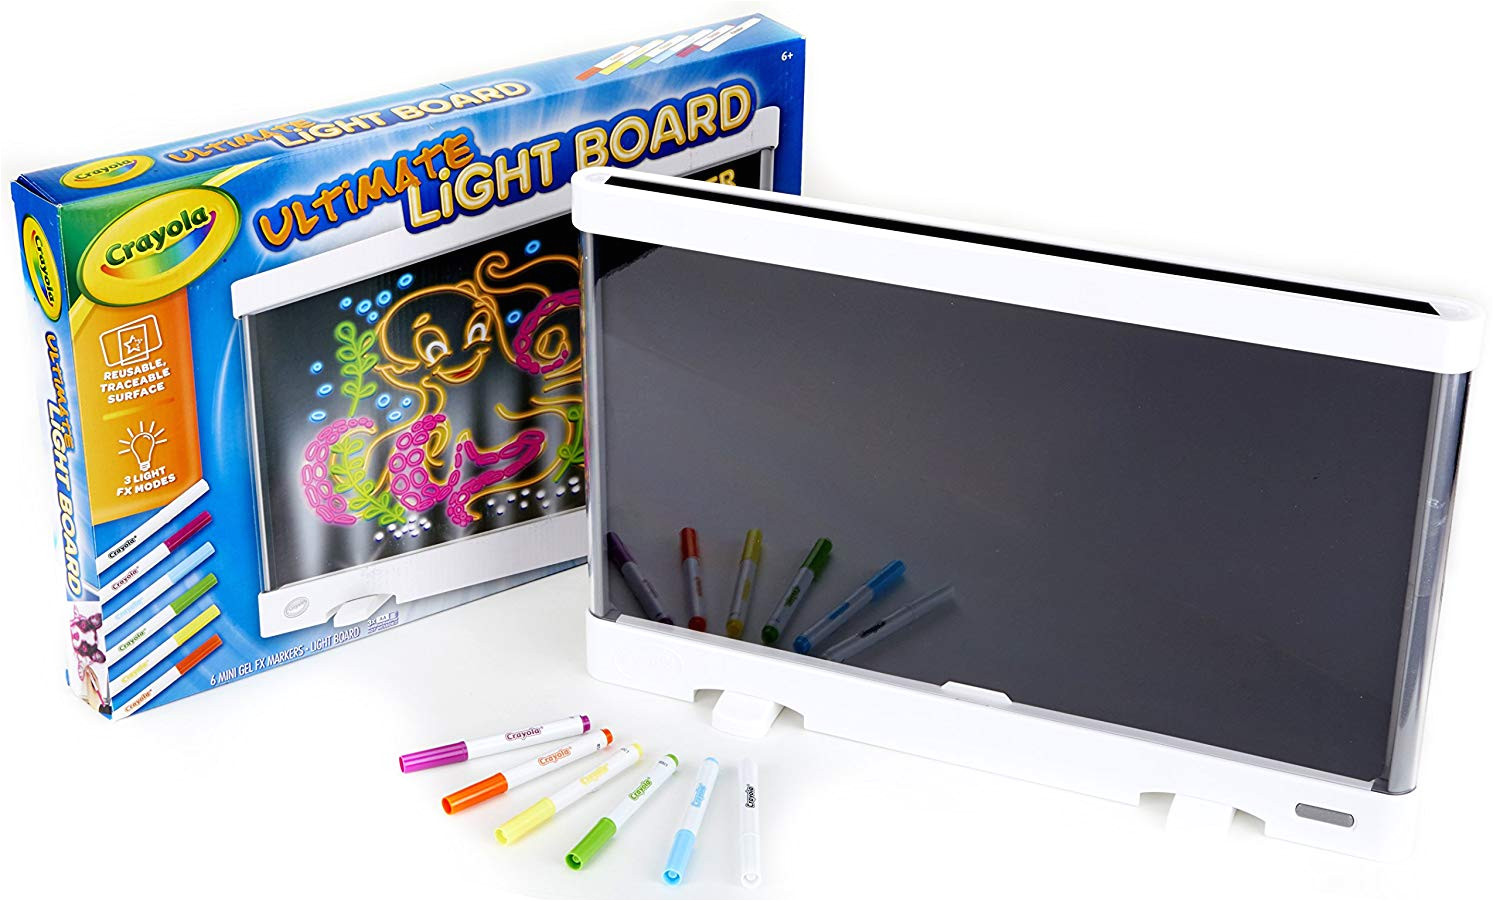 crayola ultimate light board drawing tablet gift for kids age 6 7 8 9 markers amazon canada